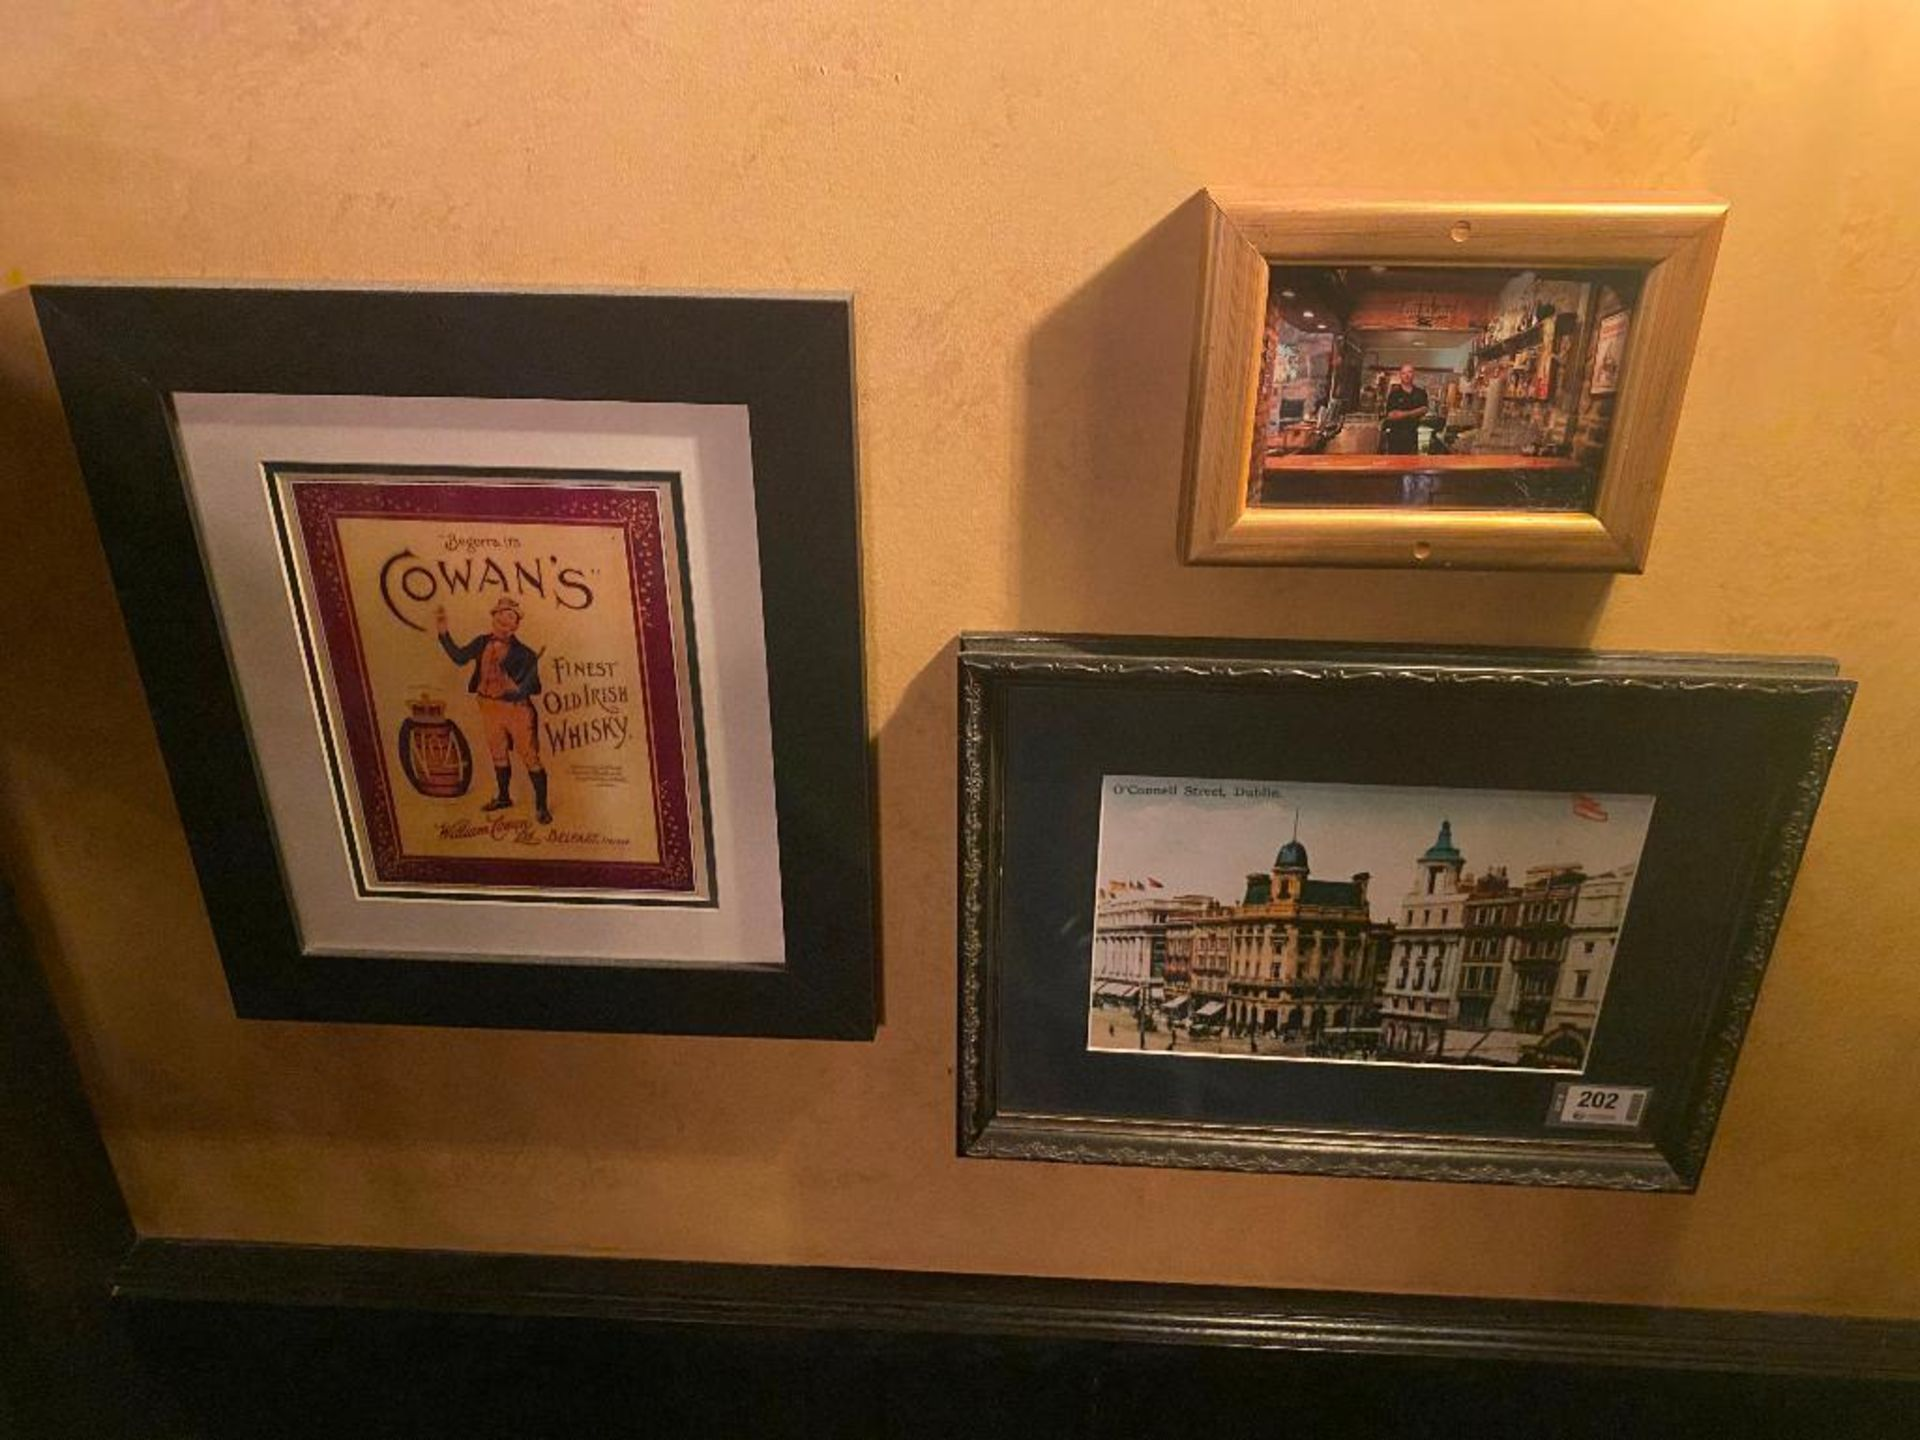 LOT OF (3) FRAMED MEMORABILIA PHOTOS & (1) SAMPLE THE TASTE IRELAND PLAQUE - NOTE: REQUIRES REMOVAL - Image 2 of 3